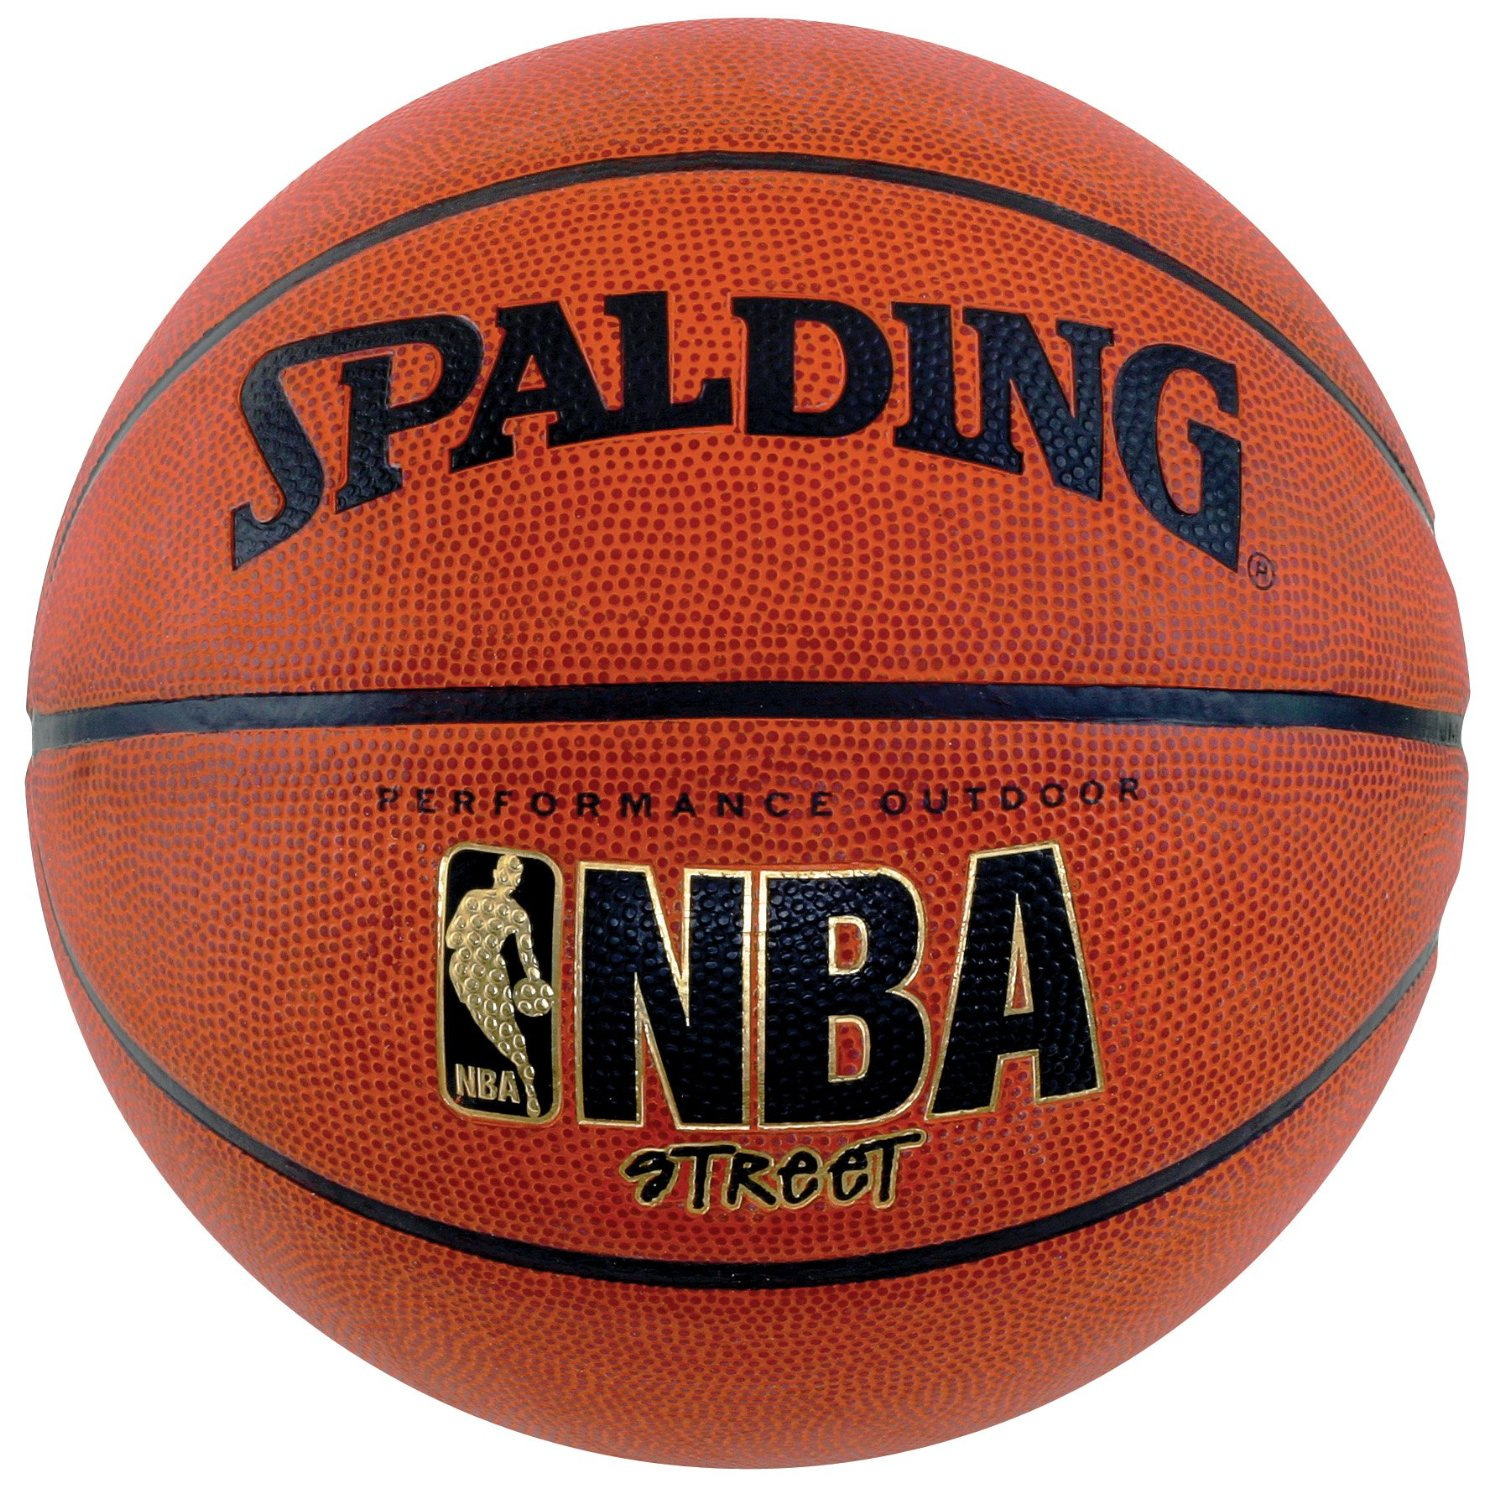 Spalding NBA Platinum Street Basketball